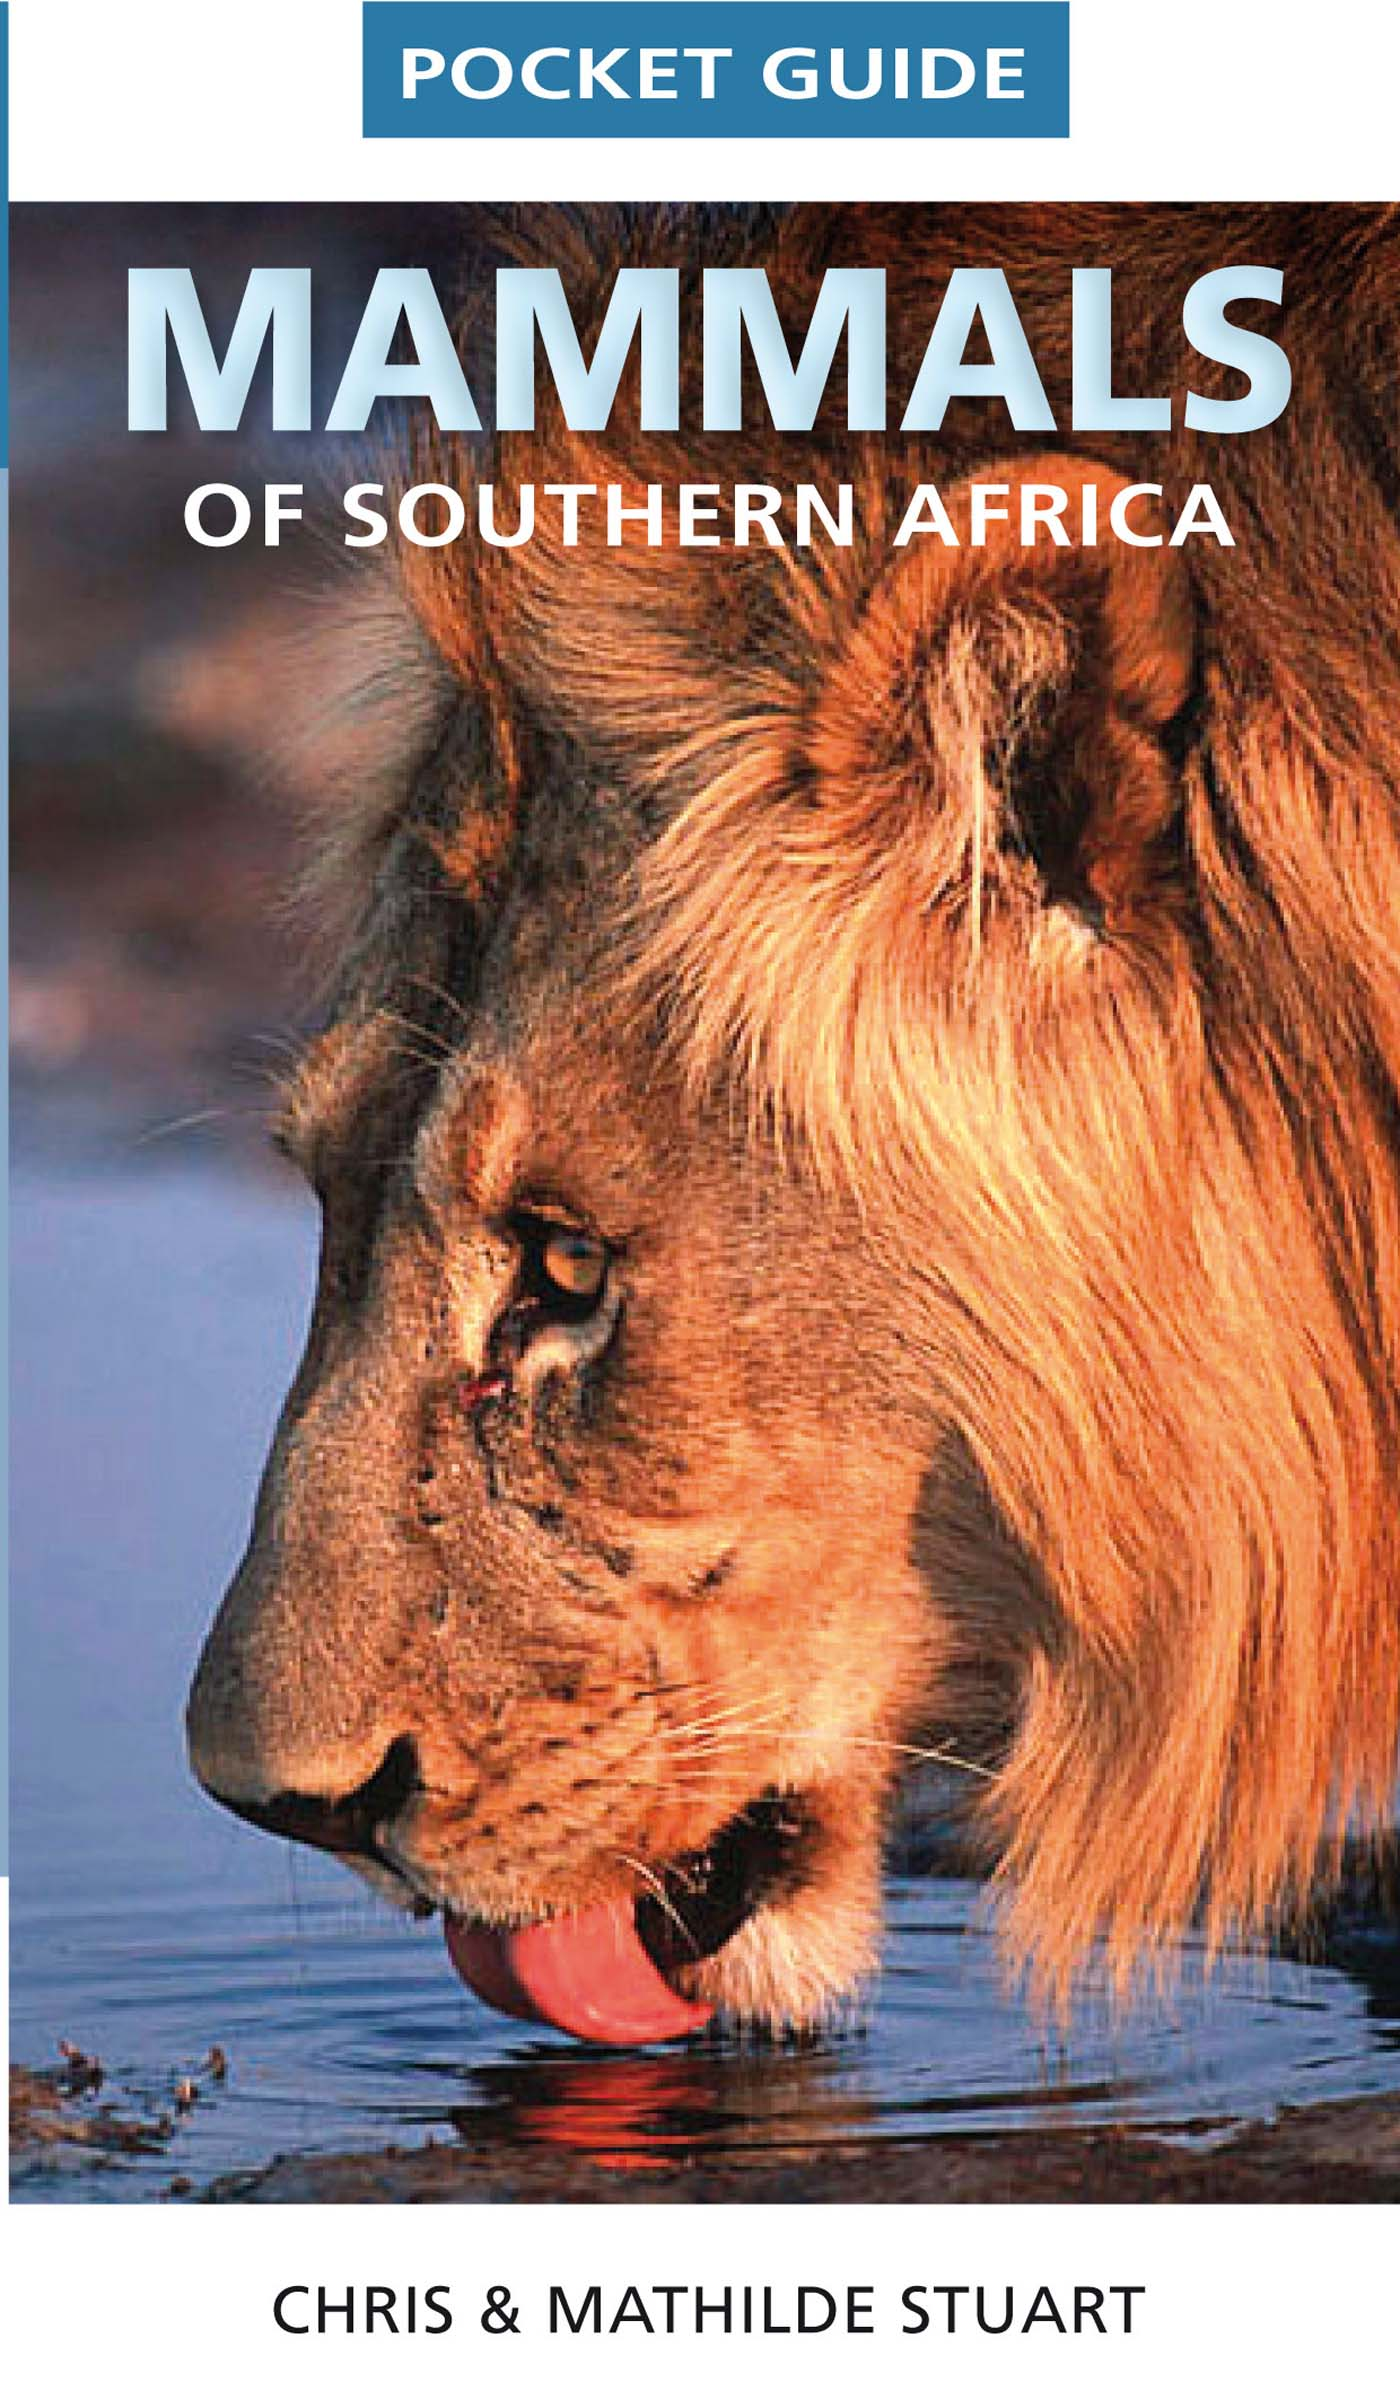 Picture of Pocket guide mammals of Southern Africa